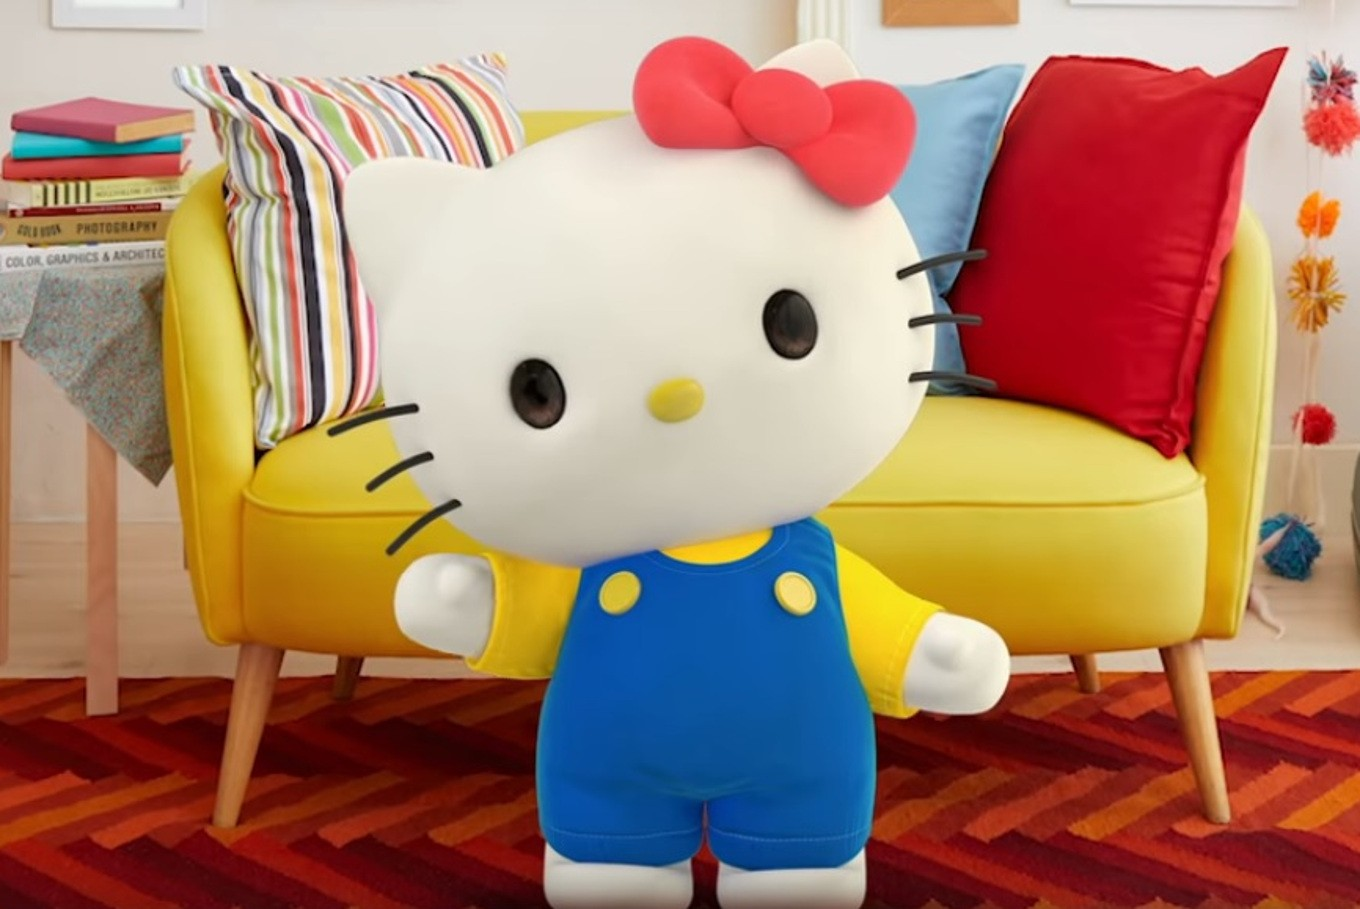 70fac7995 Hello Kitty debuts as vlogger on YouTube - Entertainment - The ...